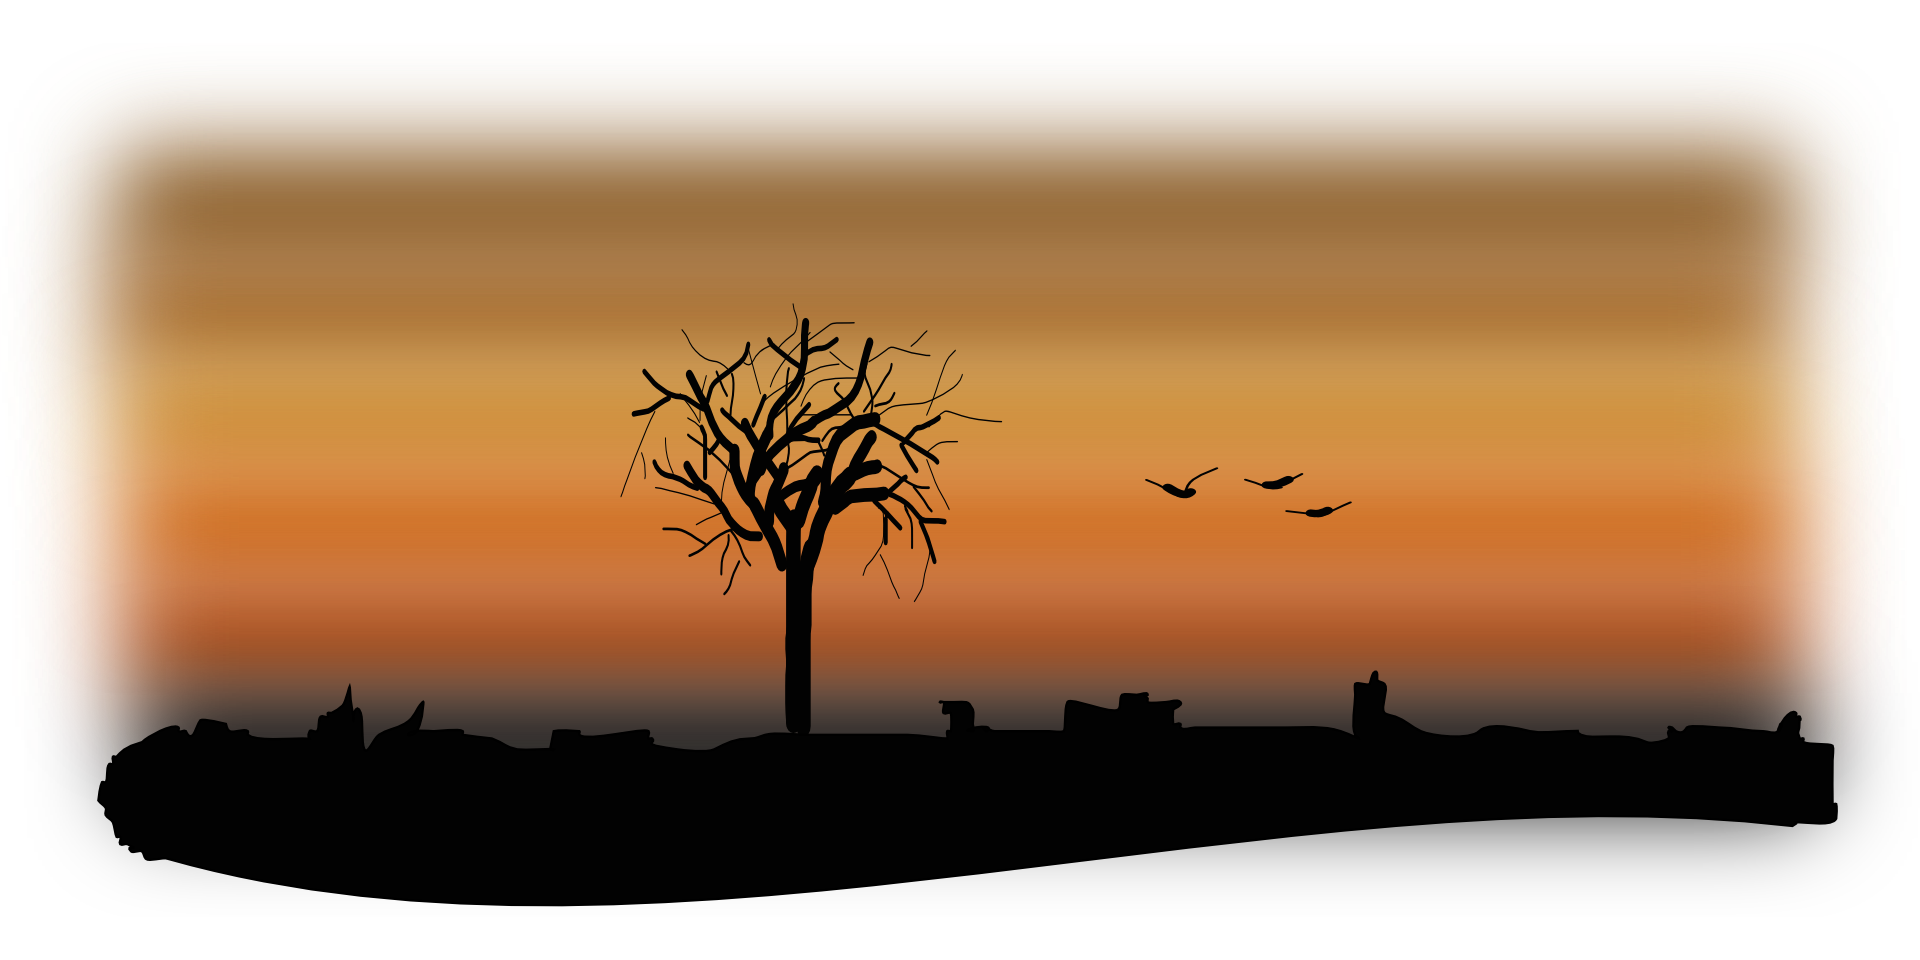 clipart download Silhouettes of a tree and flying birds at sunset free image